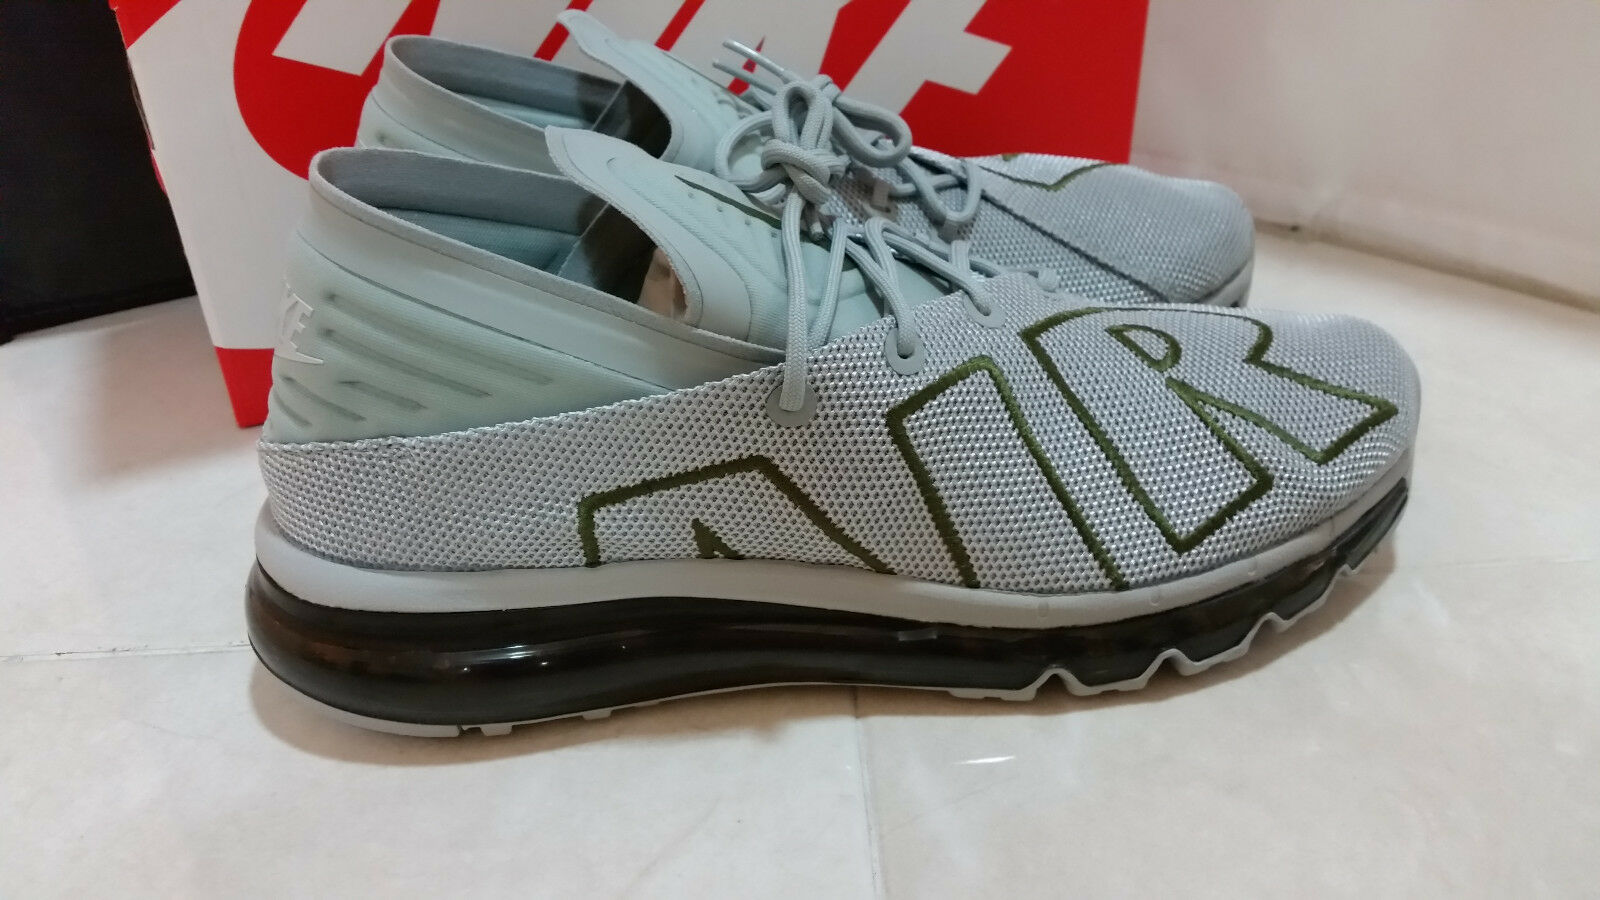 NIKE  AIR MAX FLAIR FLAIR FLAIR  942236 009  MENS  RUNNING  SHOES SIZE 9.5  COLOR  GREY 75e0f2